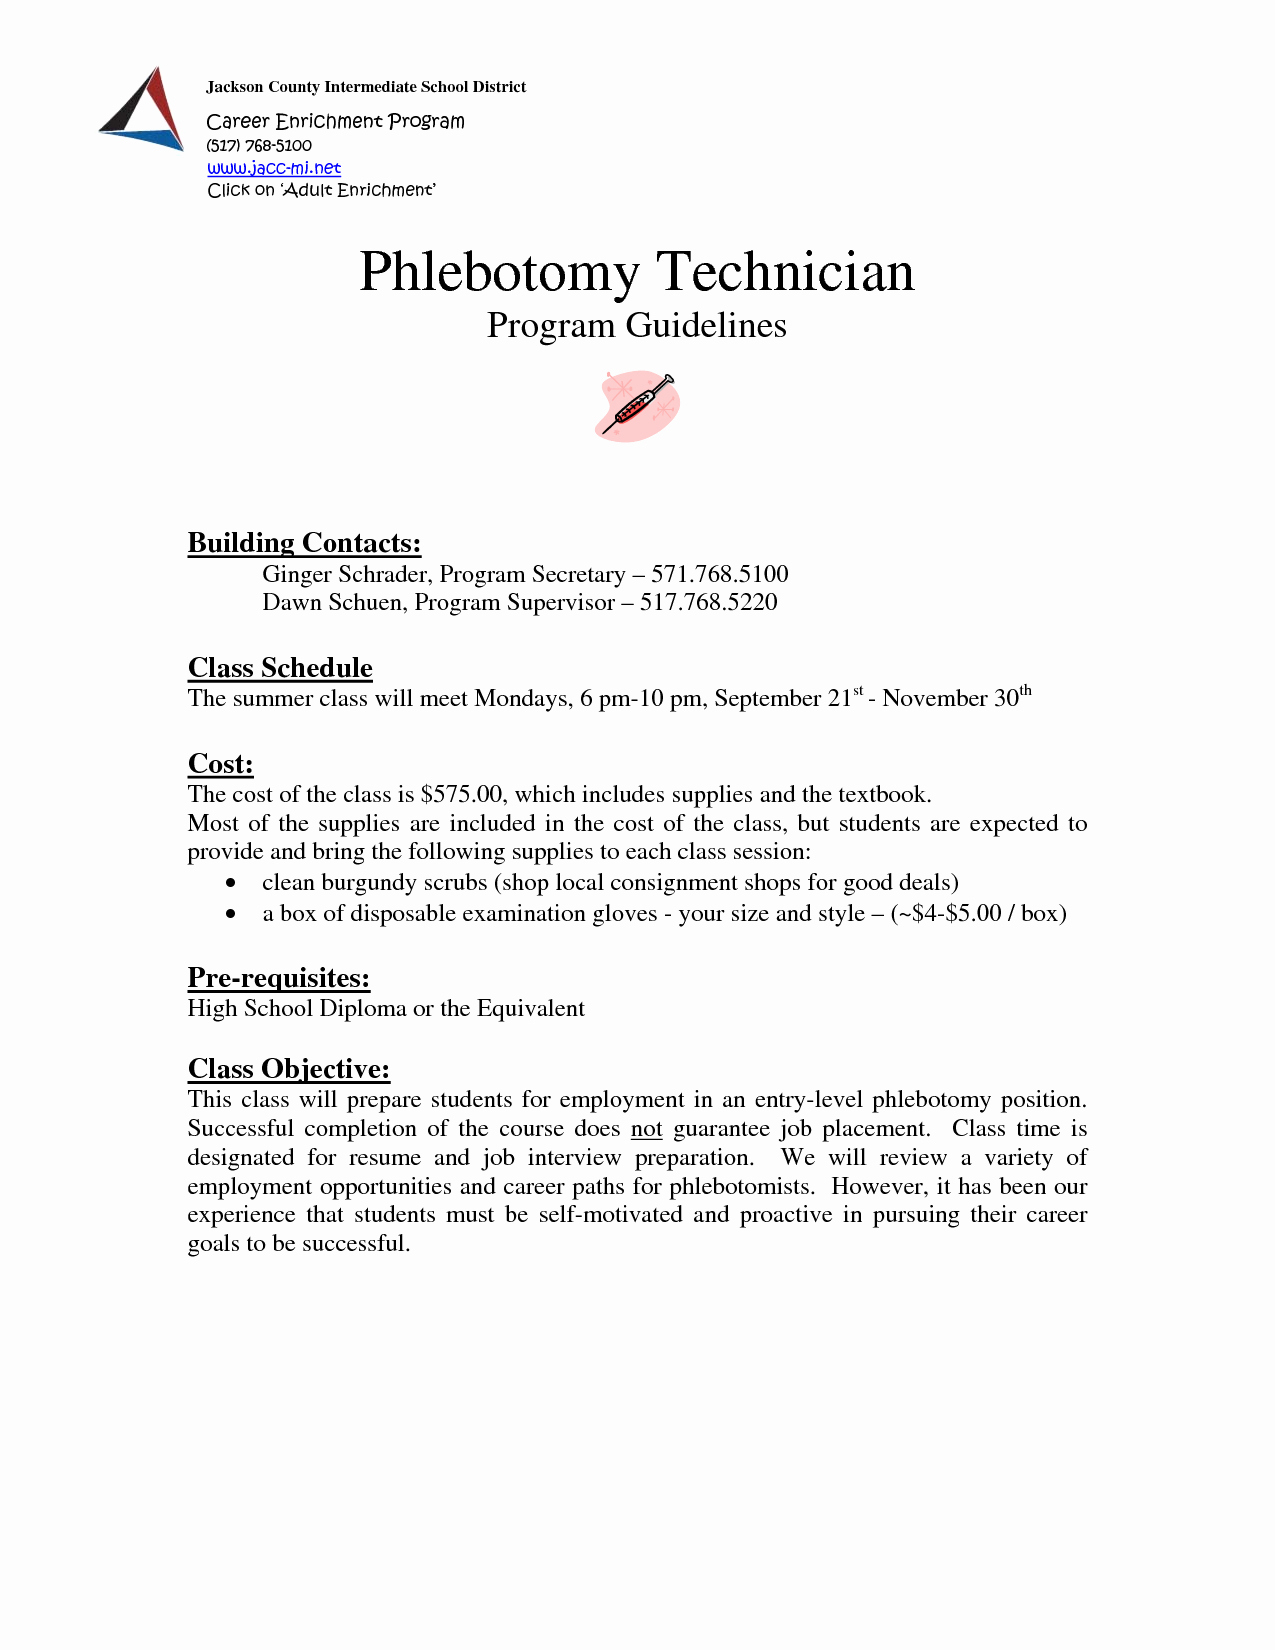 phlebotomy cover letter template example-Cover Letter Tips New Phlebotomy Cover Letter Sample Korestvenesambientecas 8-e